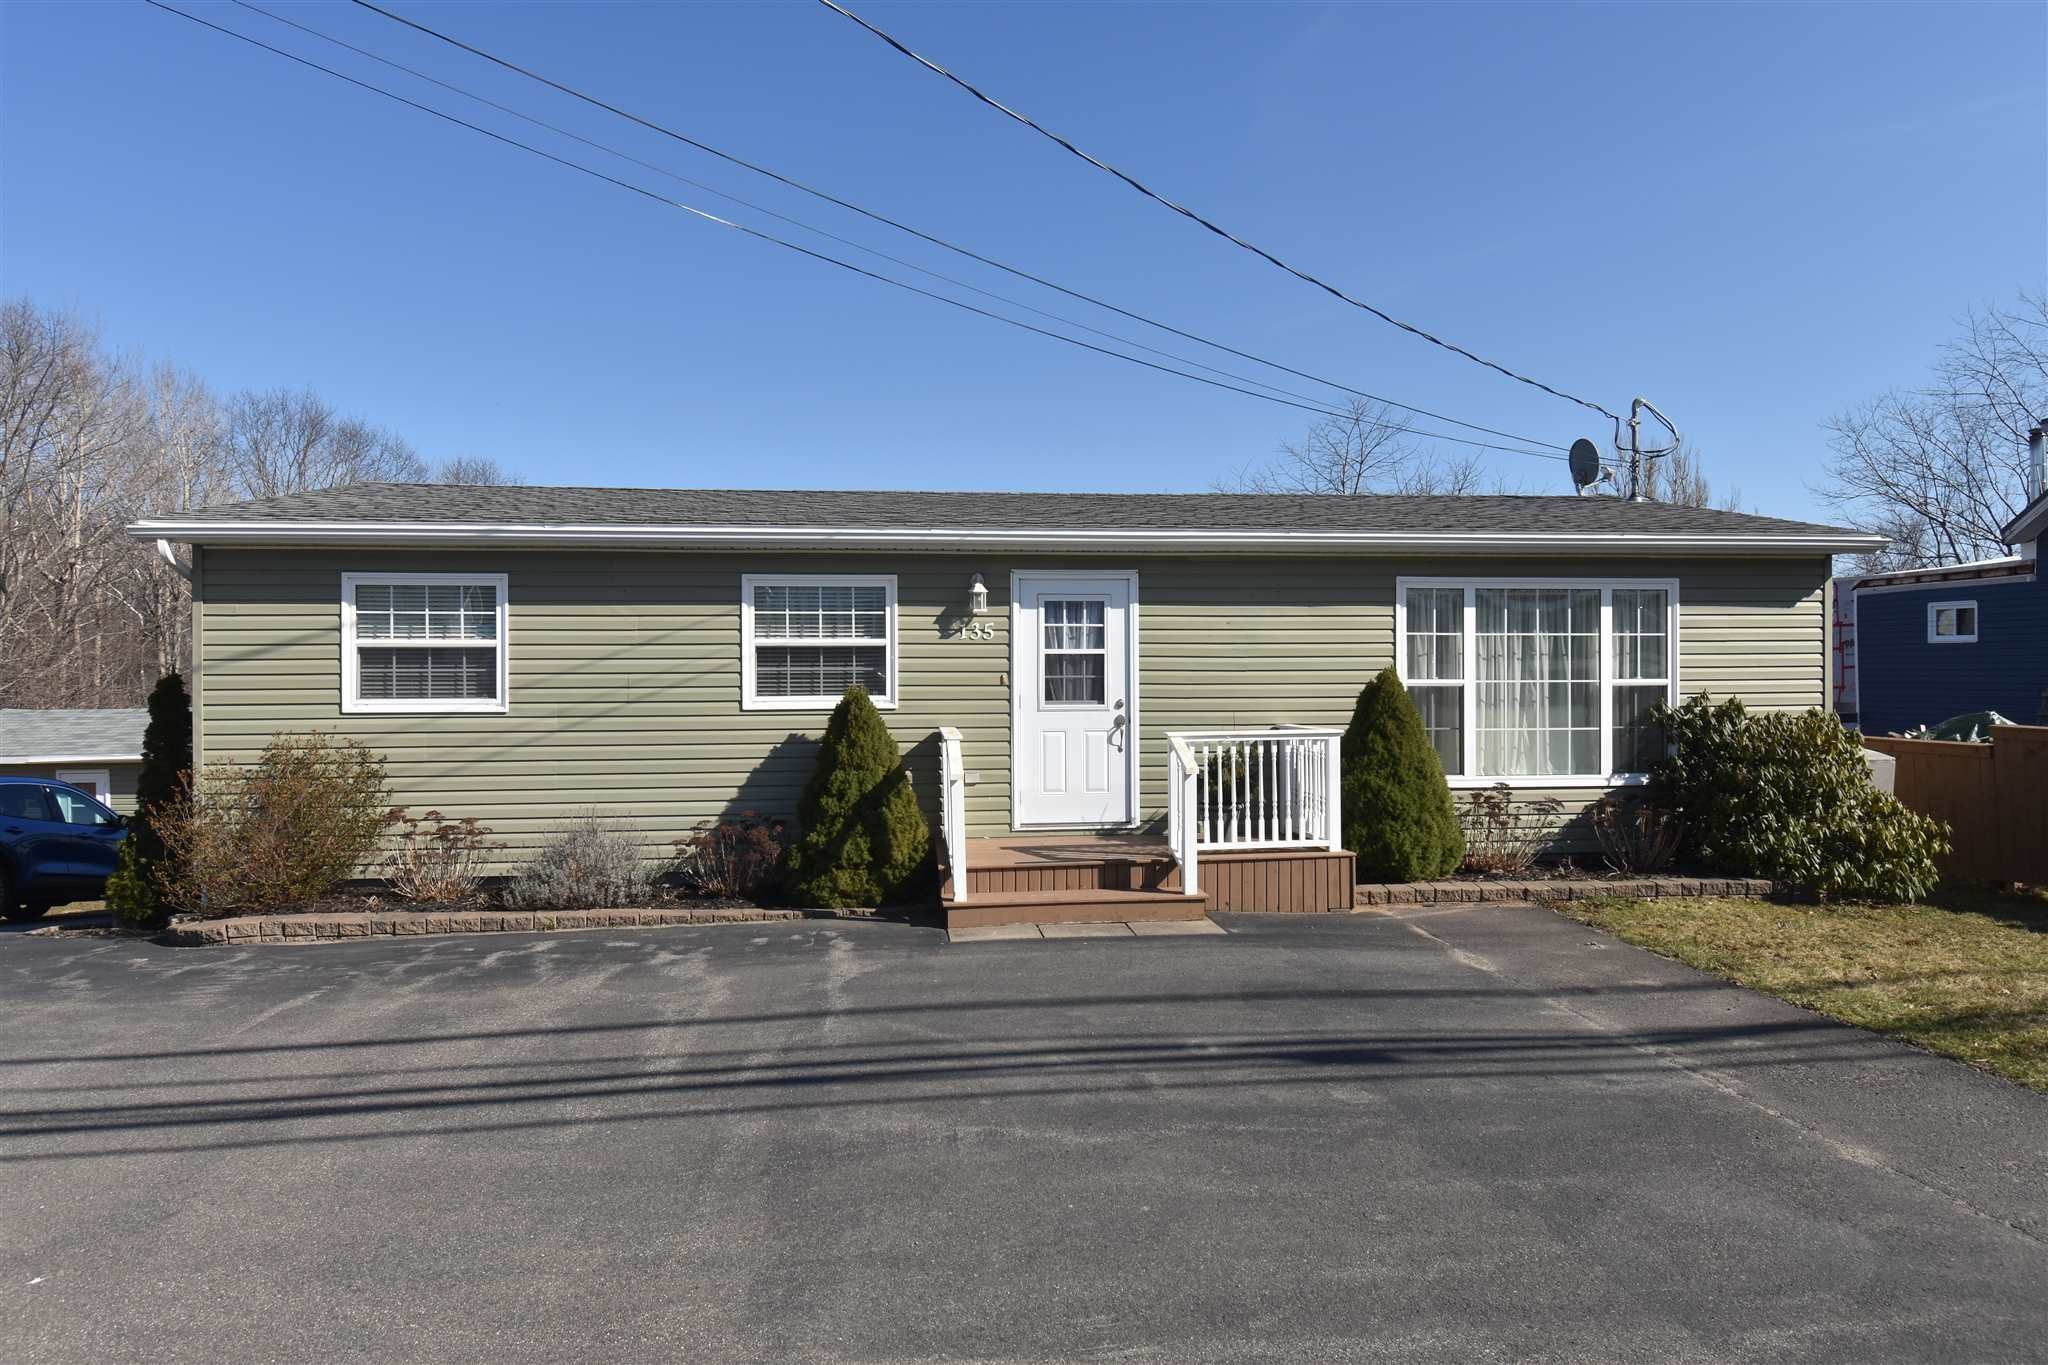 Main Photo: 135 Highway 303 in Digby: 401-Digby County Residential for sale (Annapolis Valley)  : MLS®# 202106686